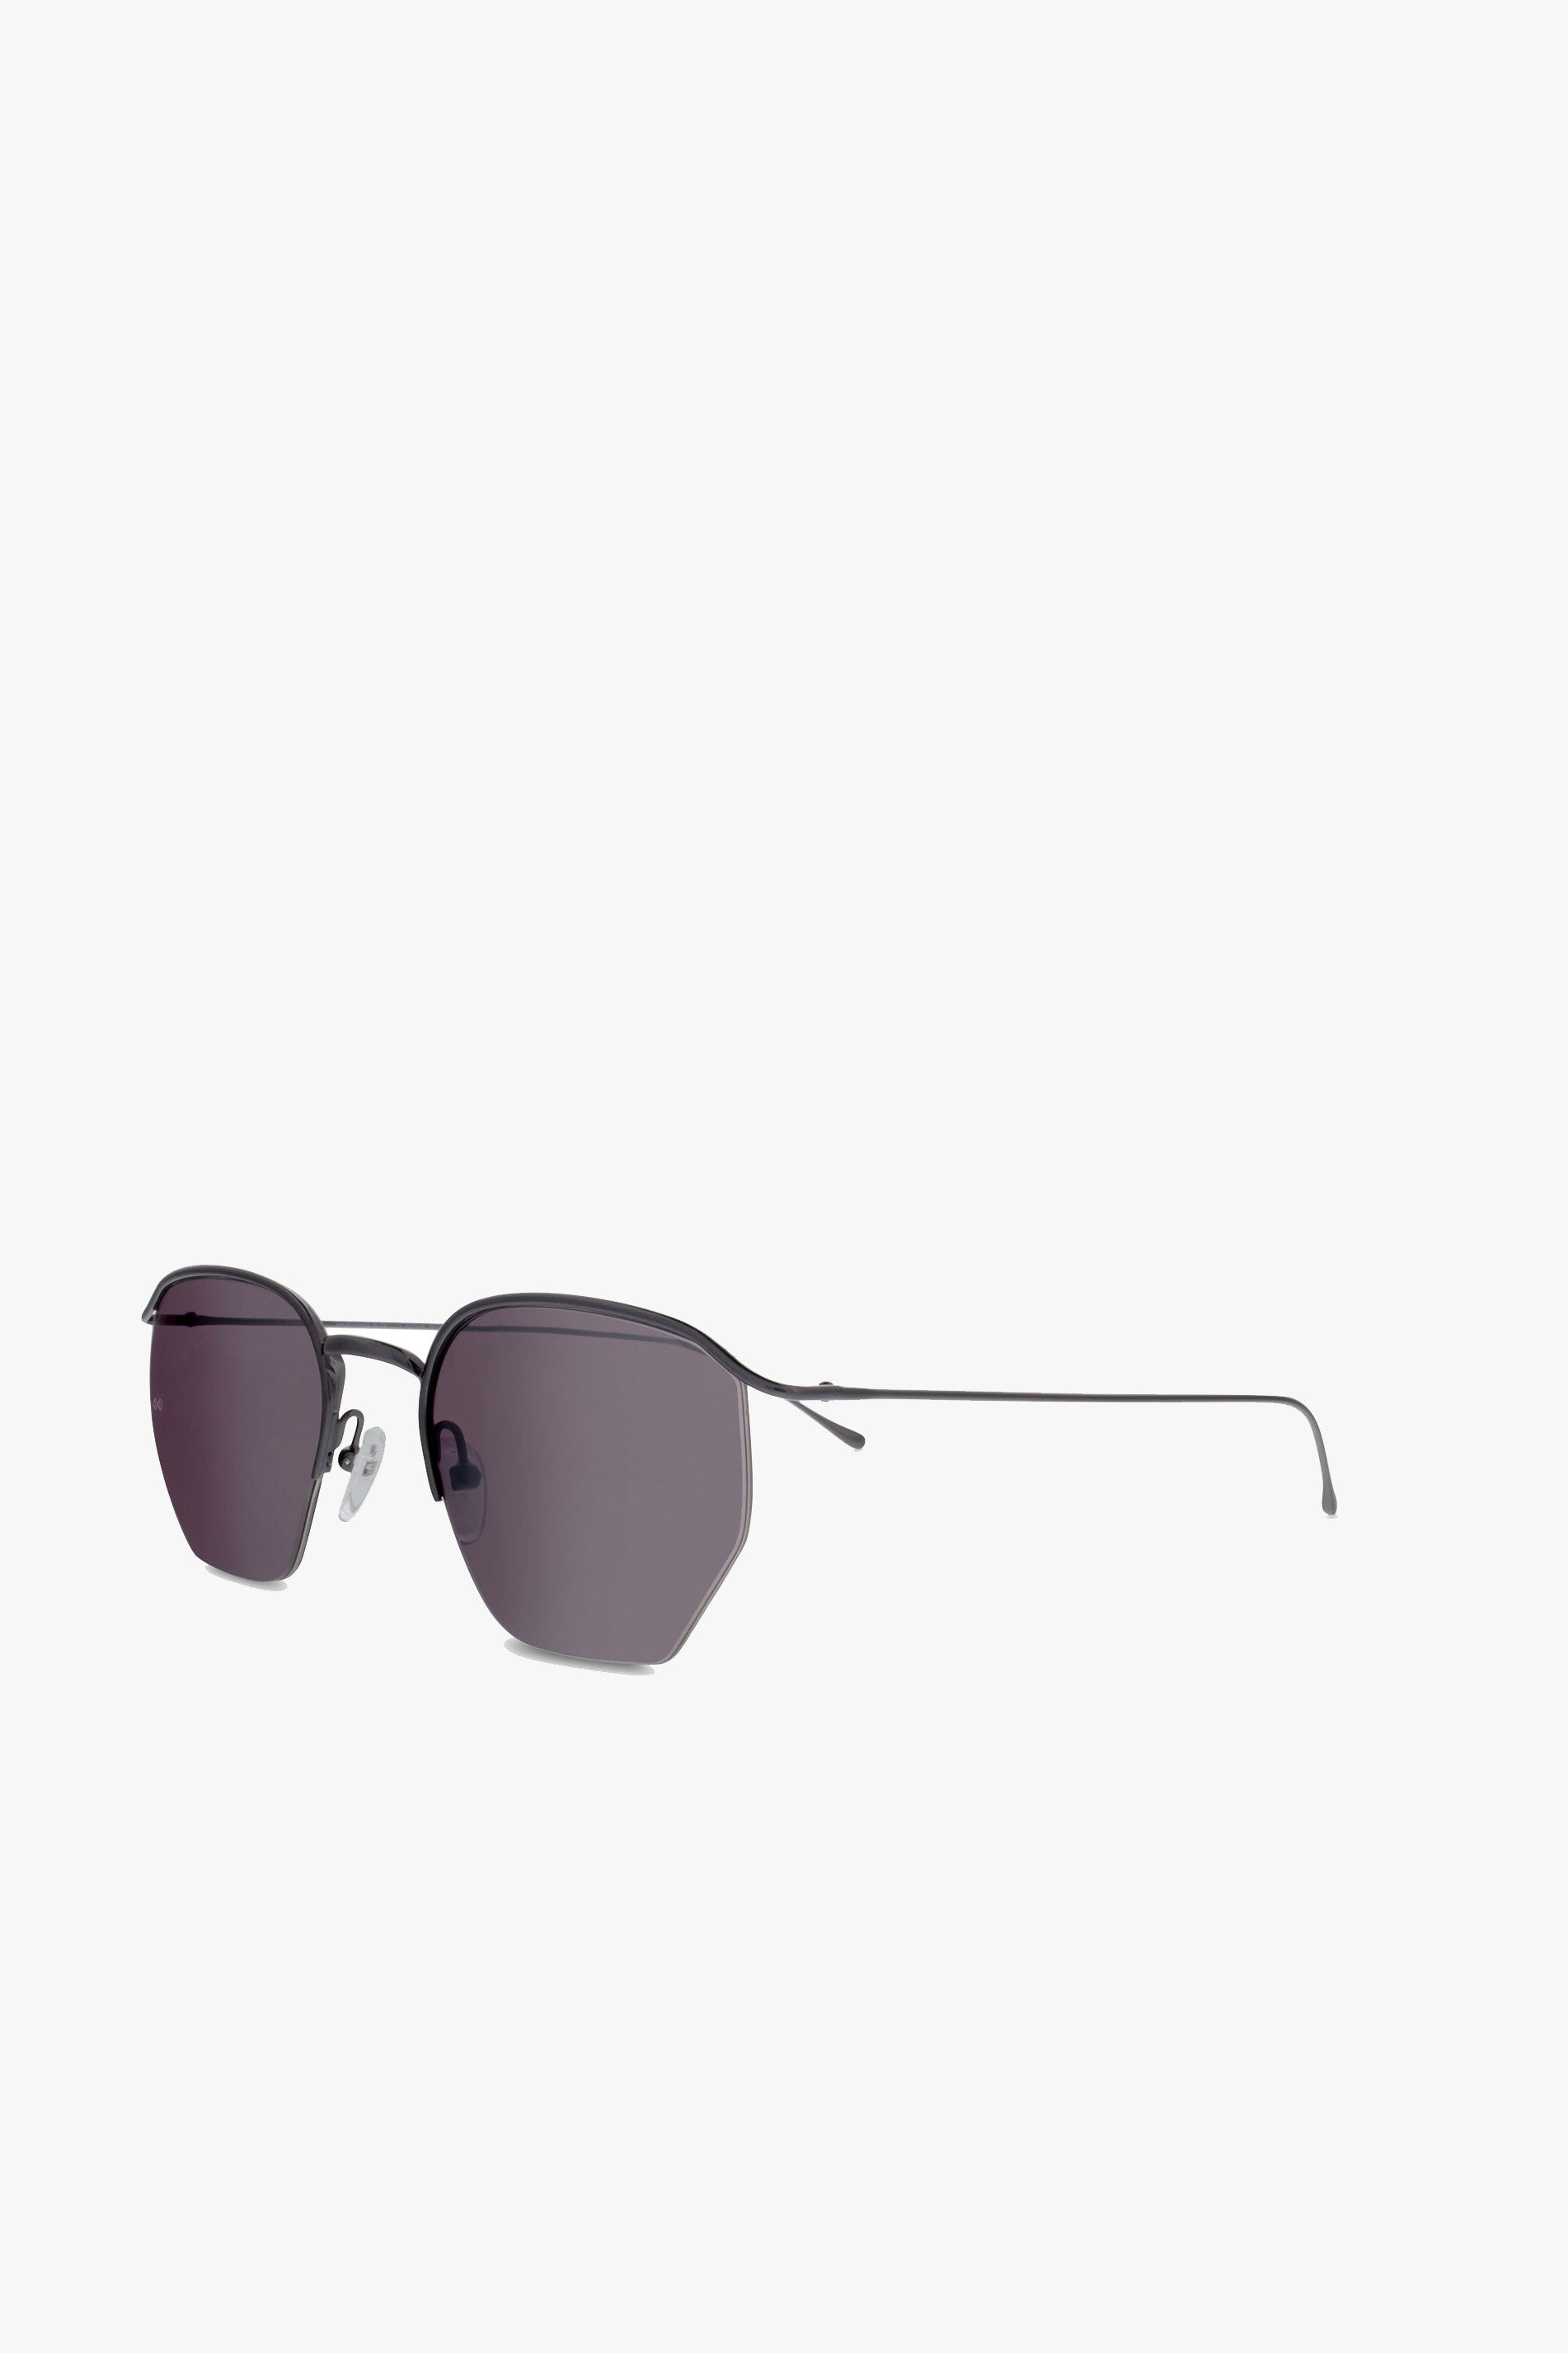 Smoke x Mirrors Geo 1 sunglasses in gunmetal - Vert & Vogue